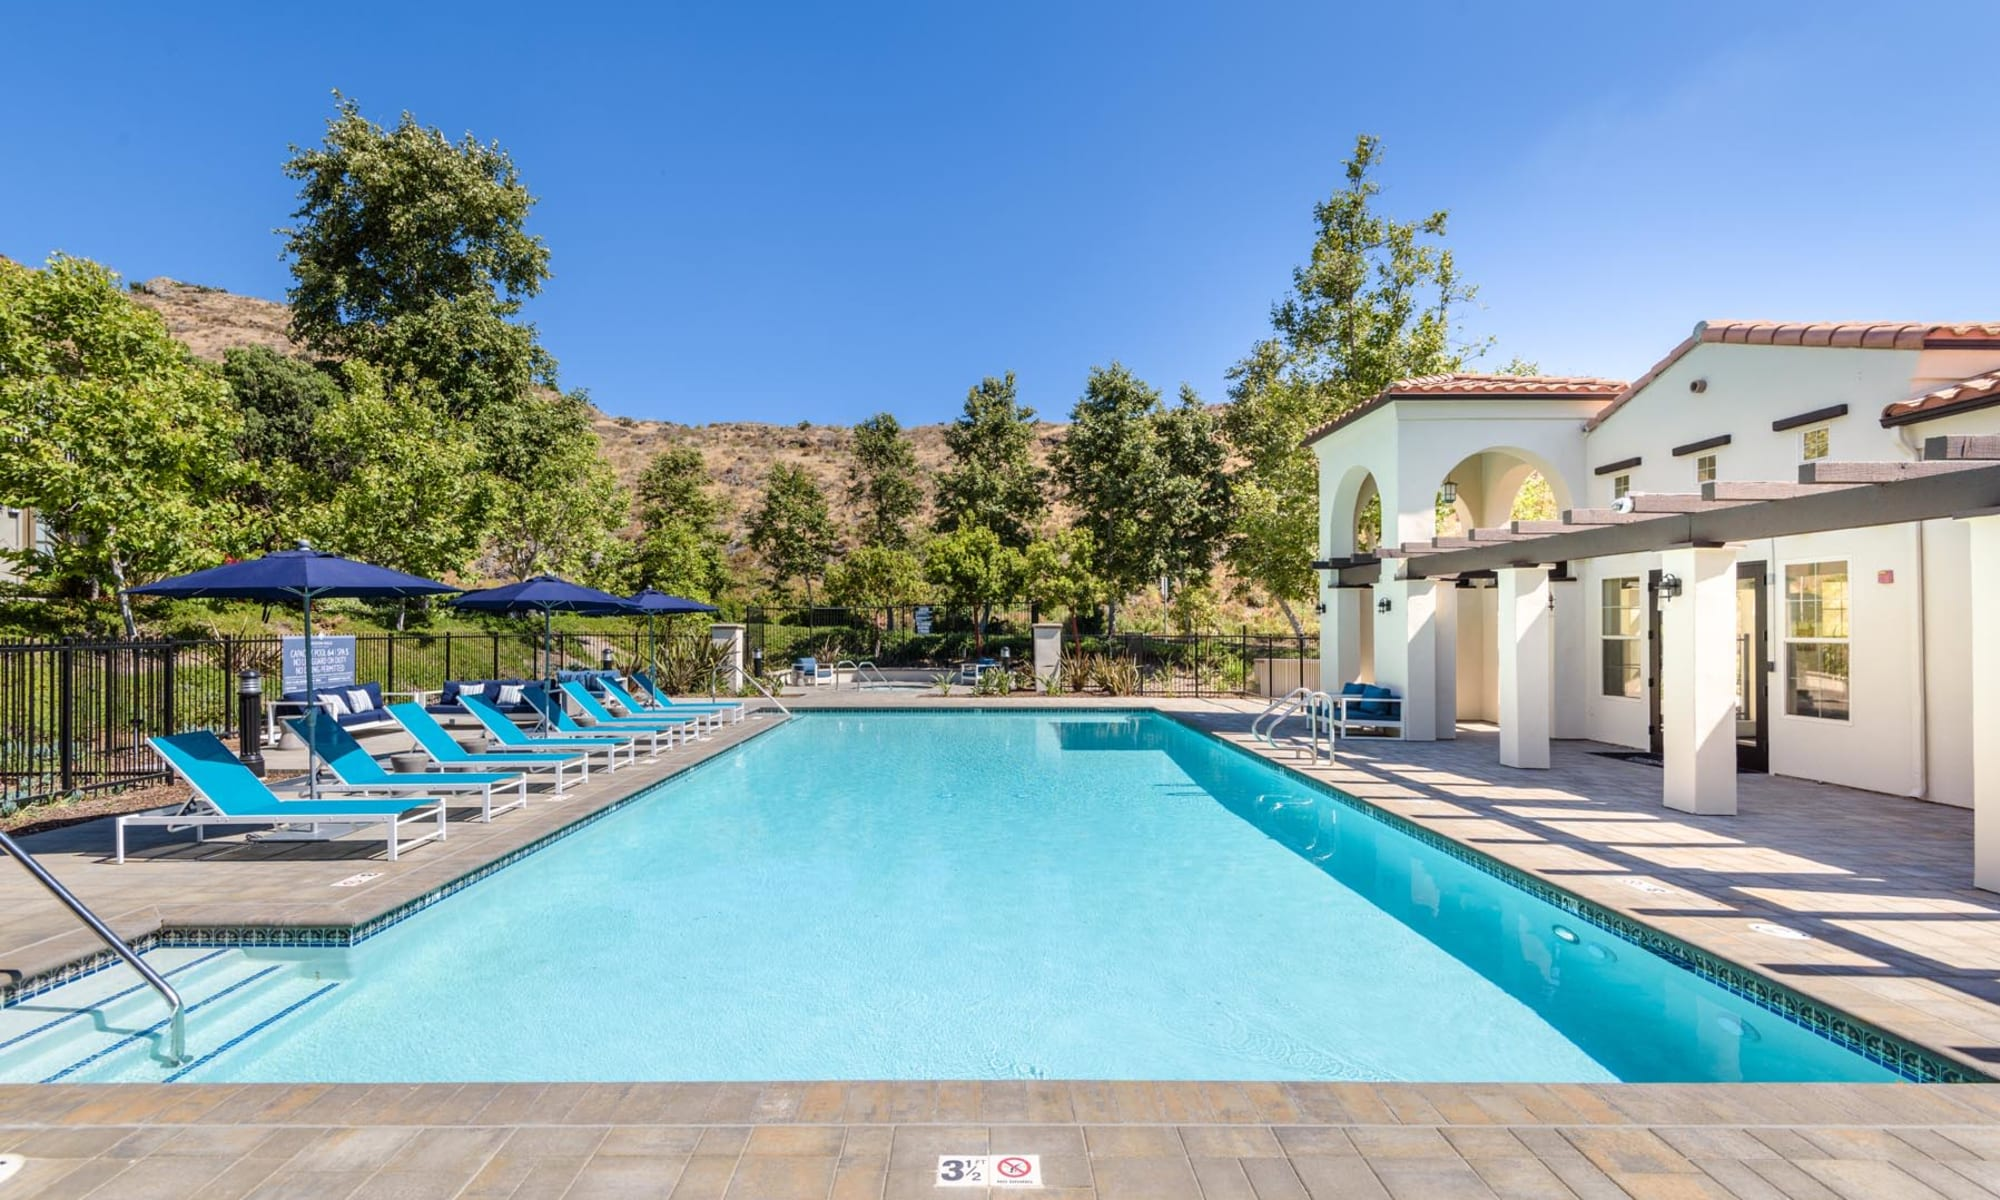 Beautiful pool on a sunny day at Mission Hills in Camarillo, California